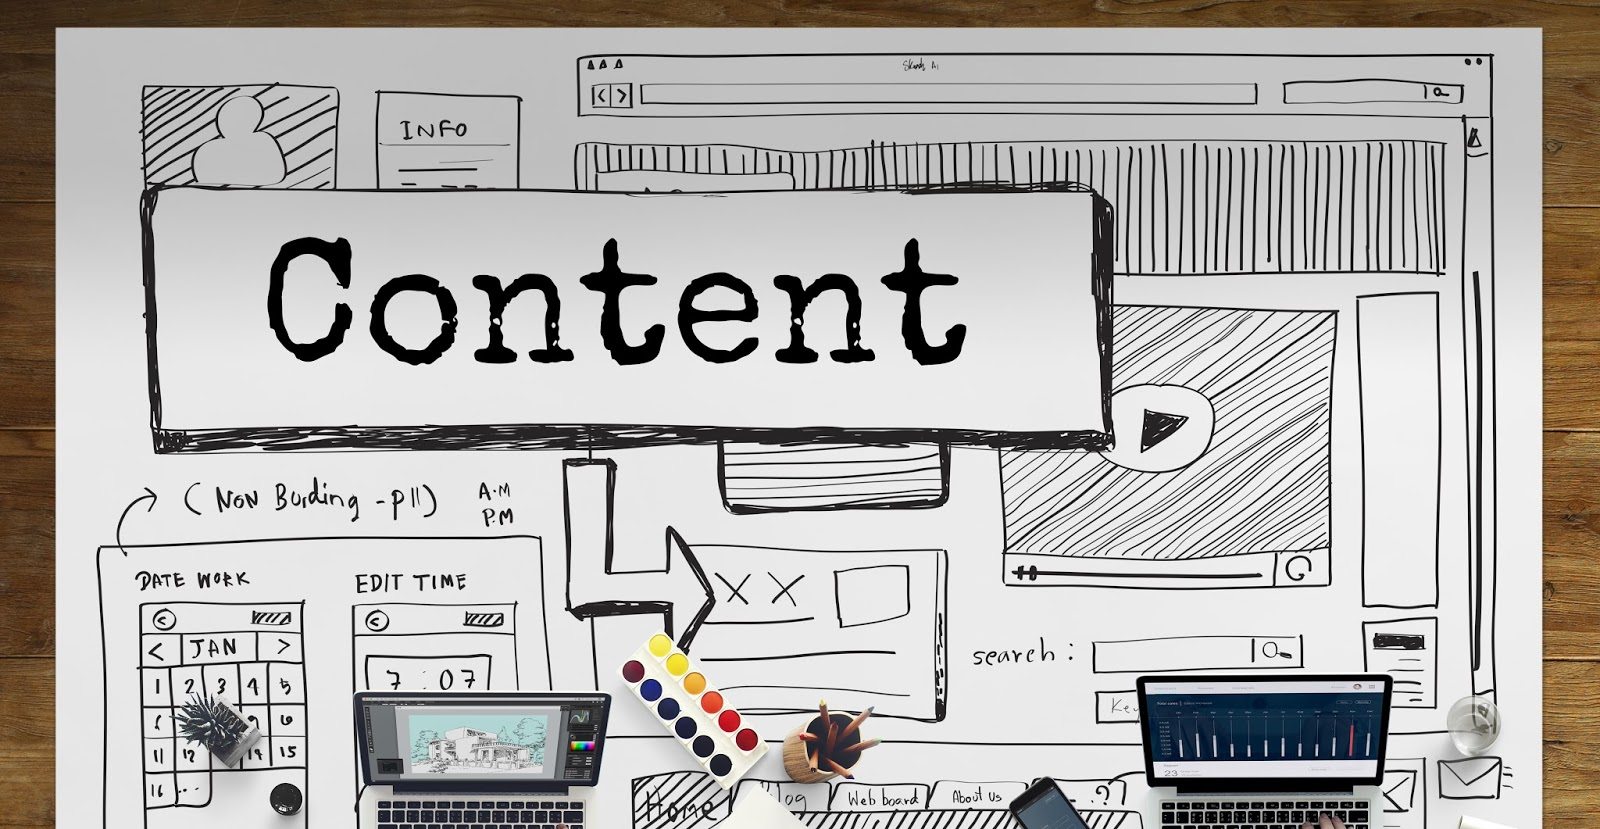 Website content - words, components, graphics